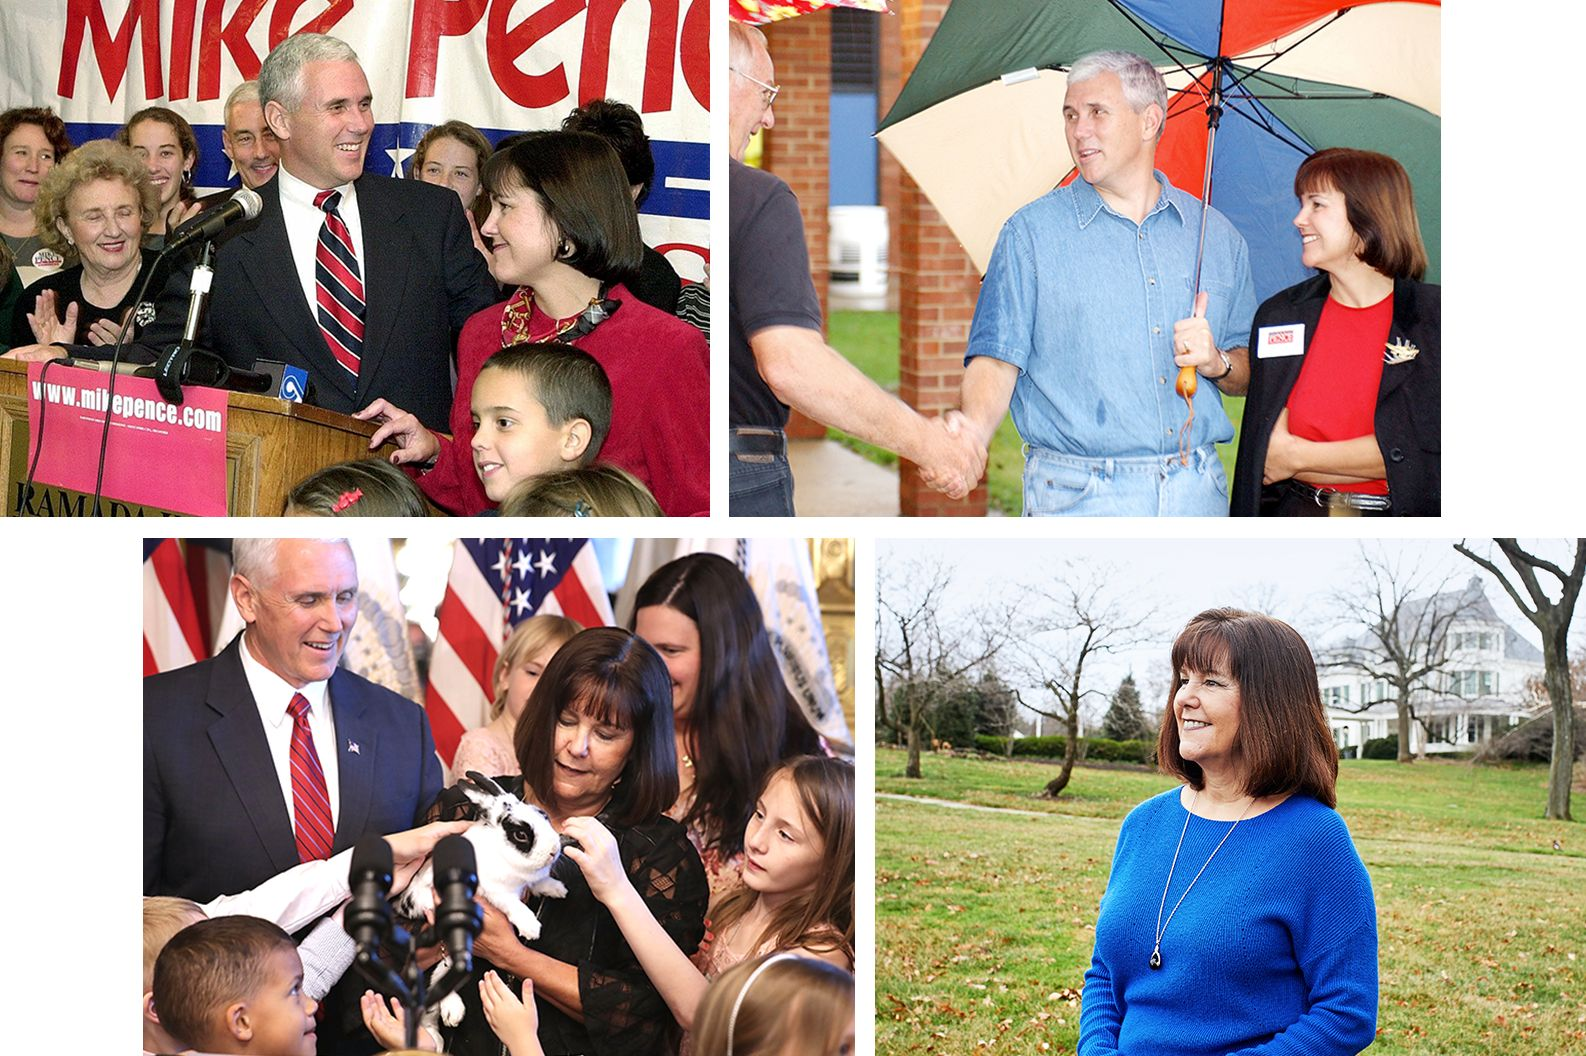 Mike and Karen Pence in 2000 (from top left), 2004, Februrary 2018, and Karen in May 2018.